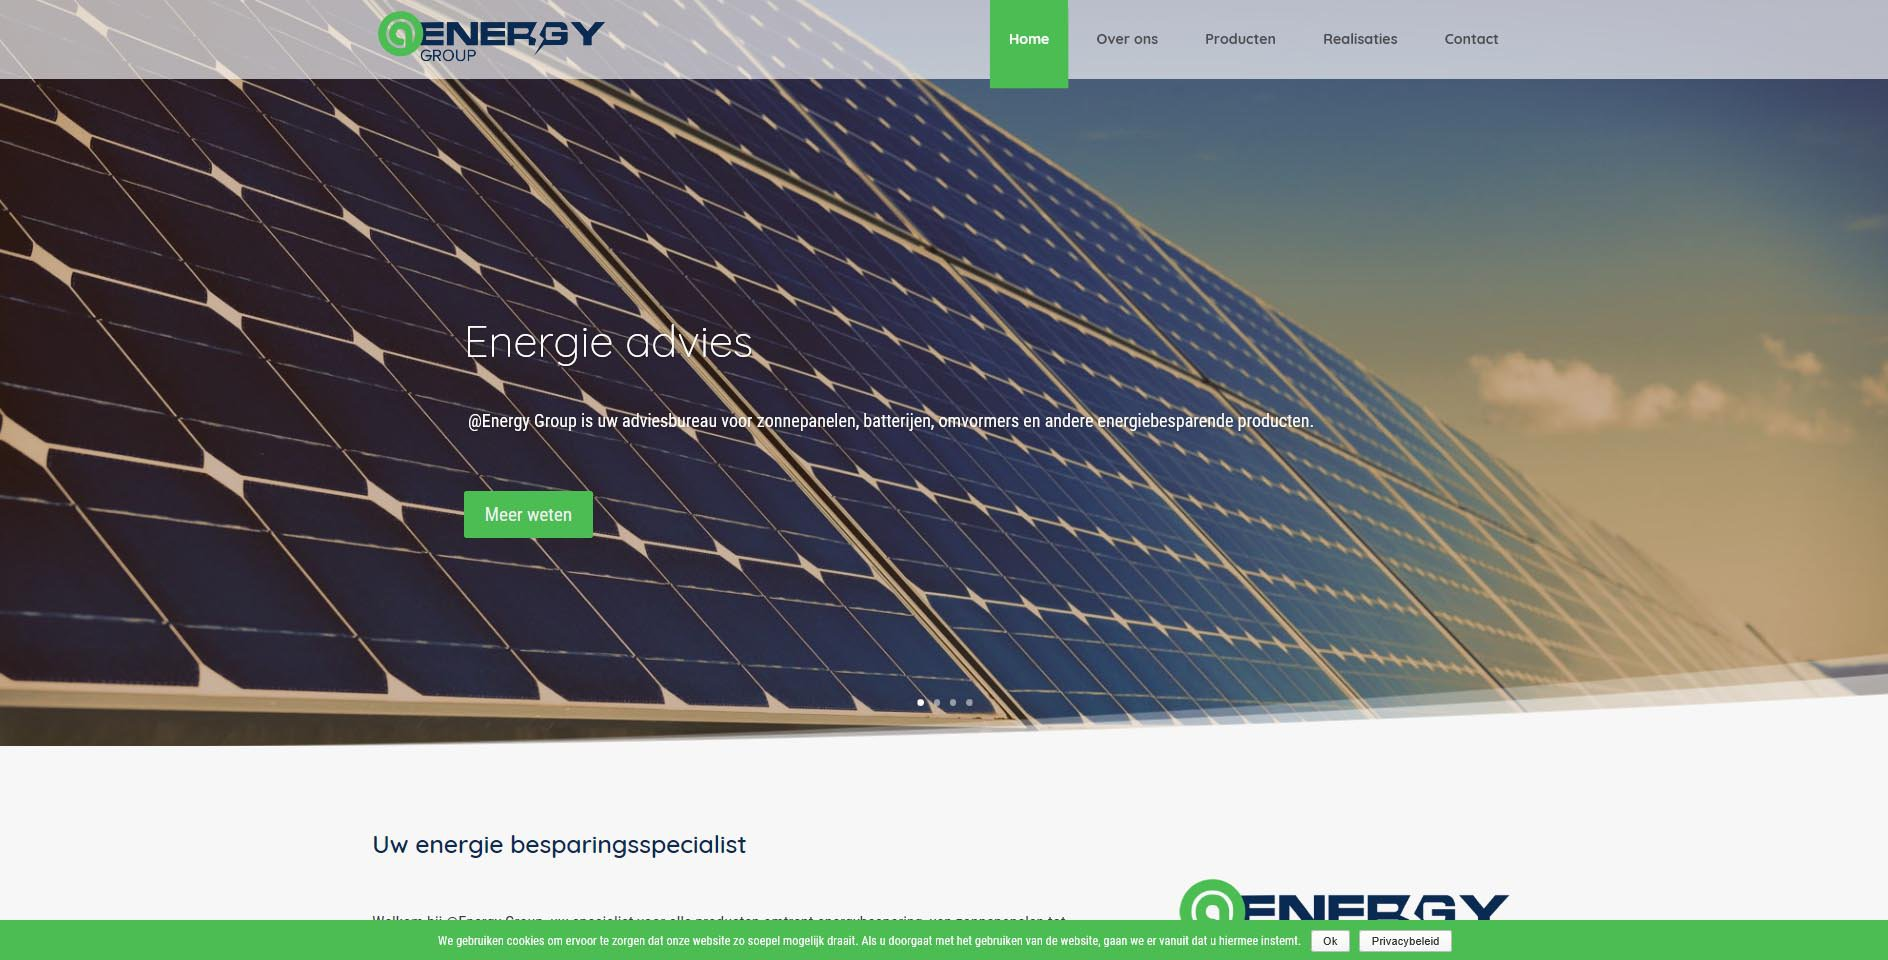 @ENERGY GROUP